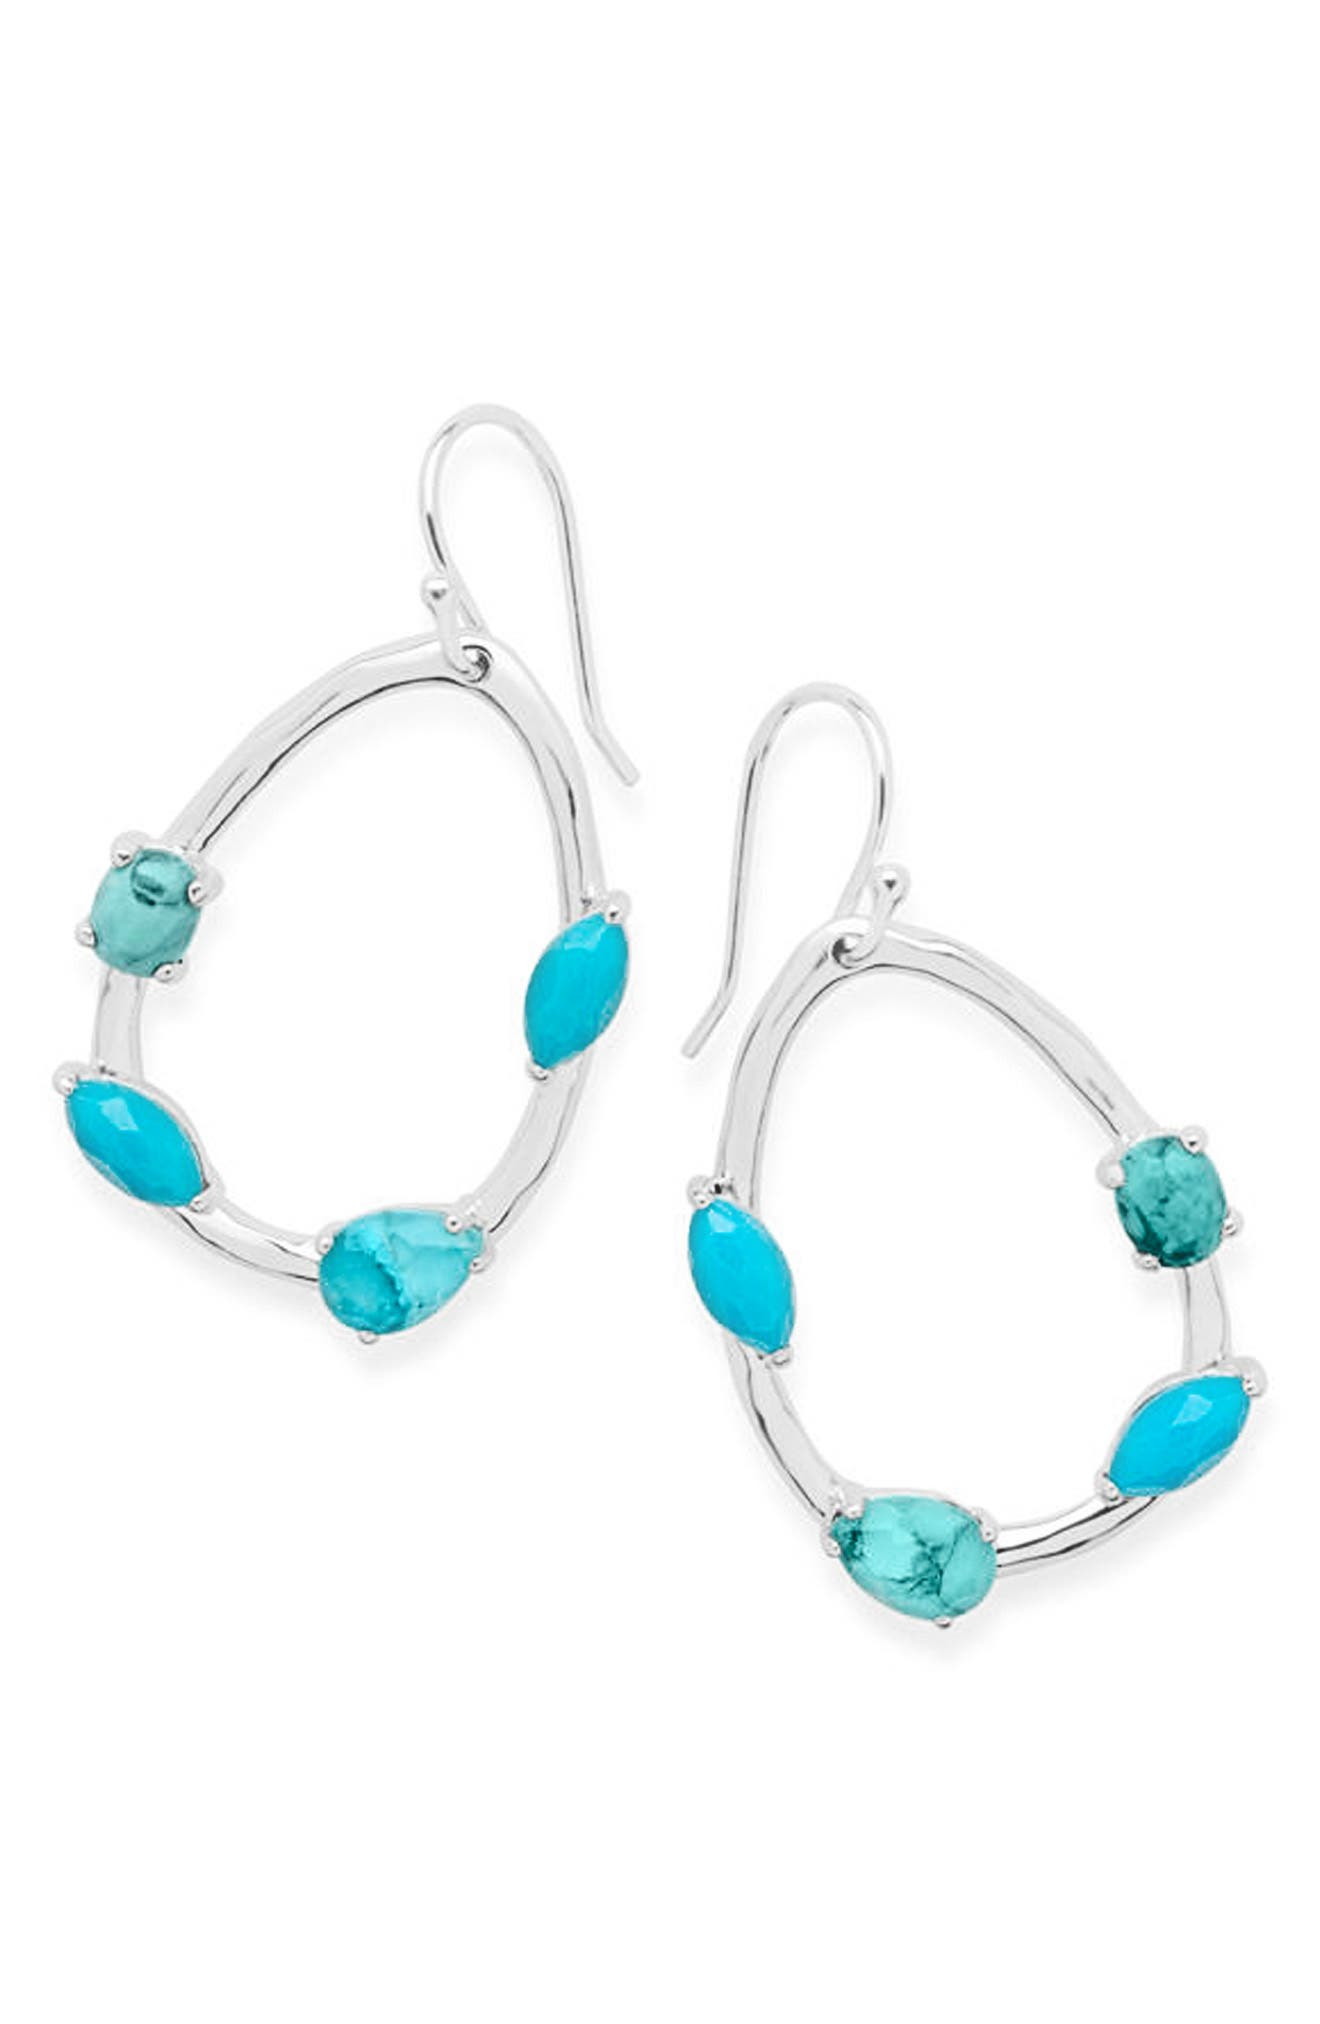 Rock Candy Small Drop Earrings,                         Main,                         color, TURQUOISE